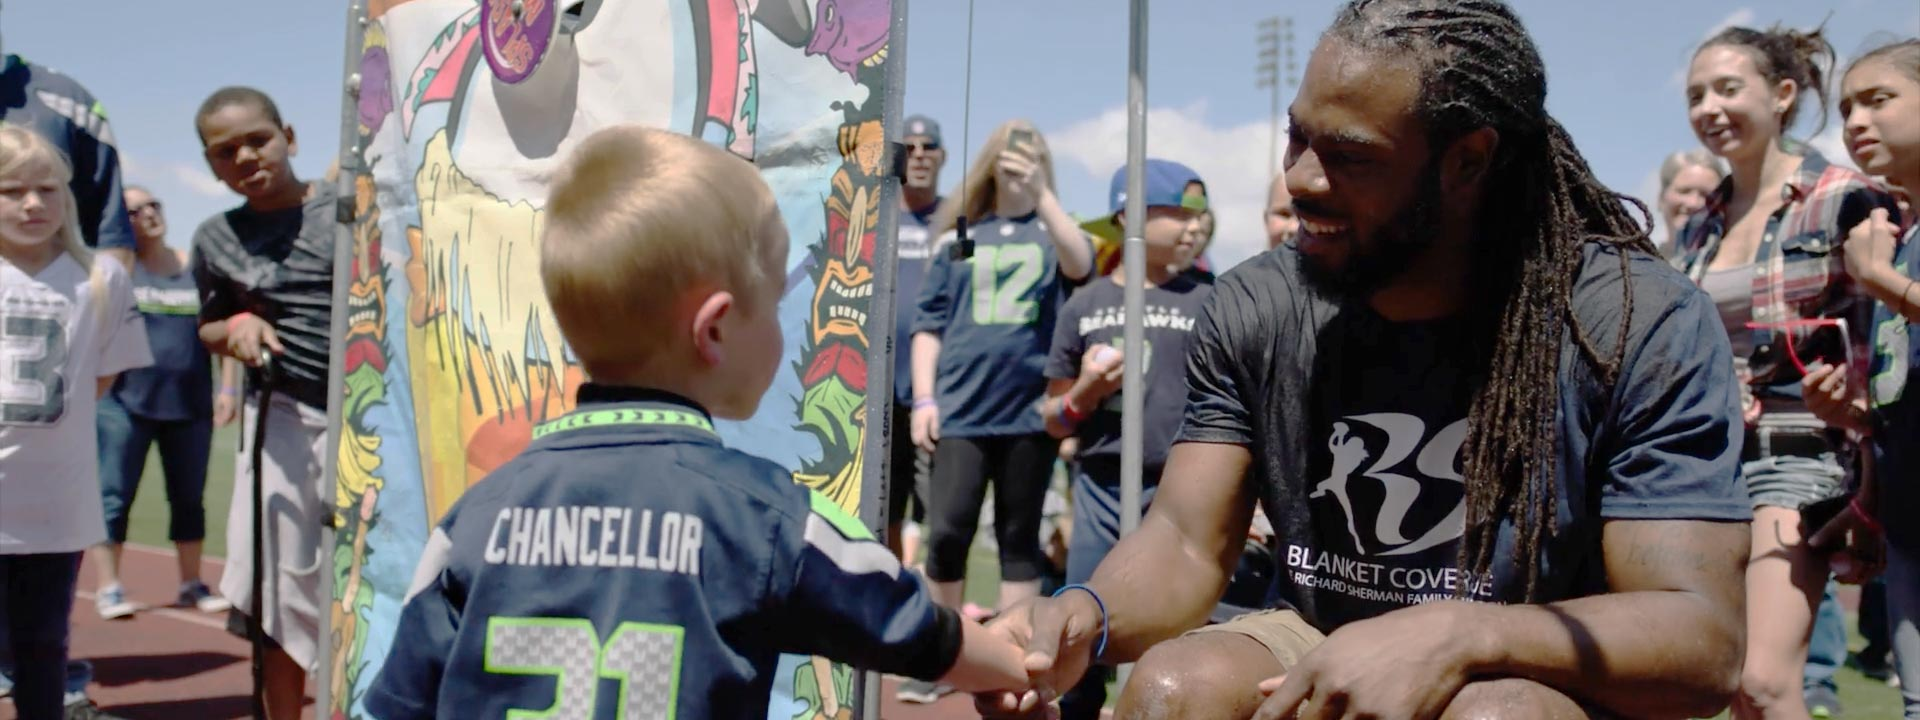 Richard Sherman provides students in low-income communities with school supplies and clothing through Blanket Coverage.